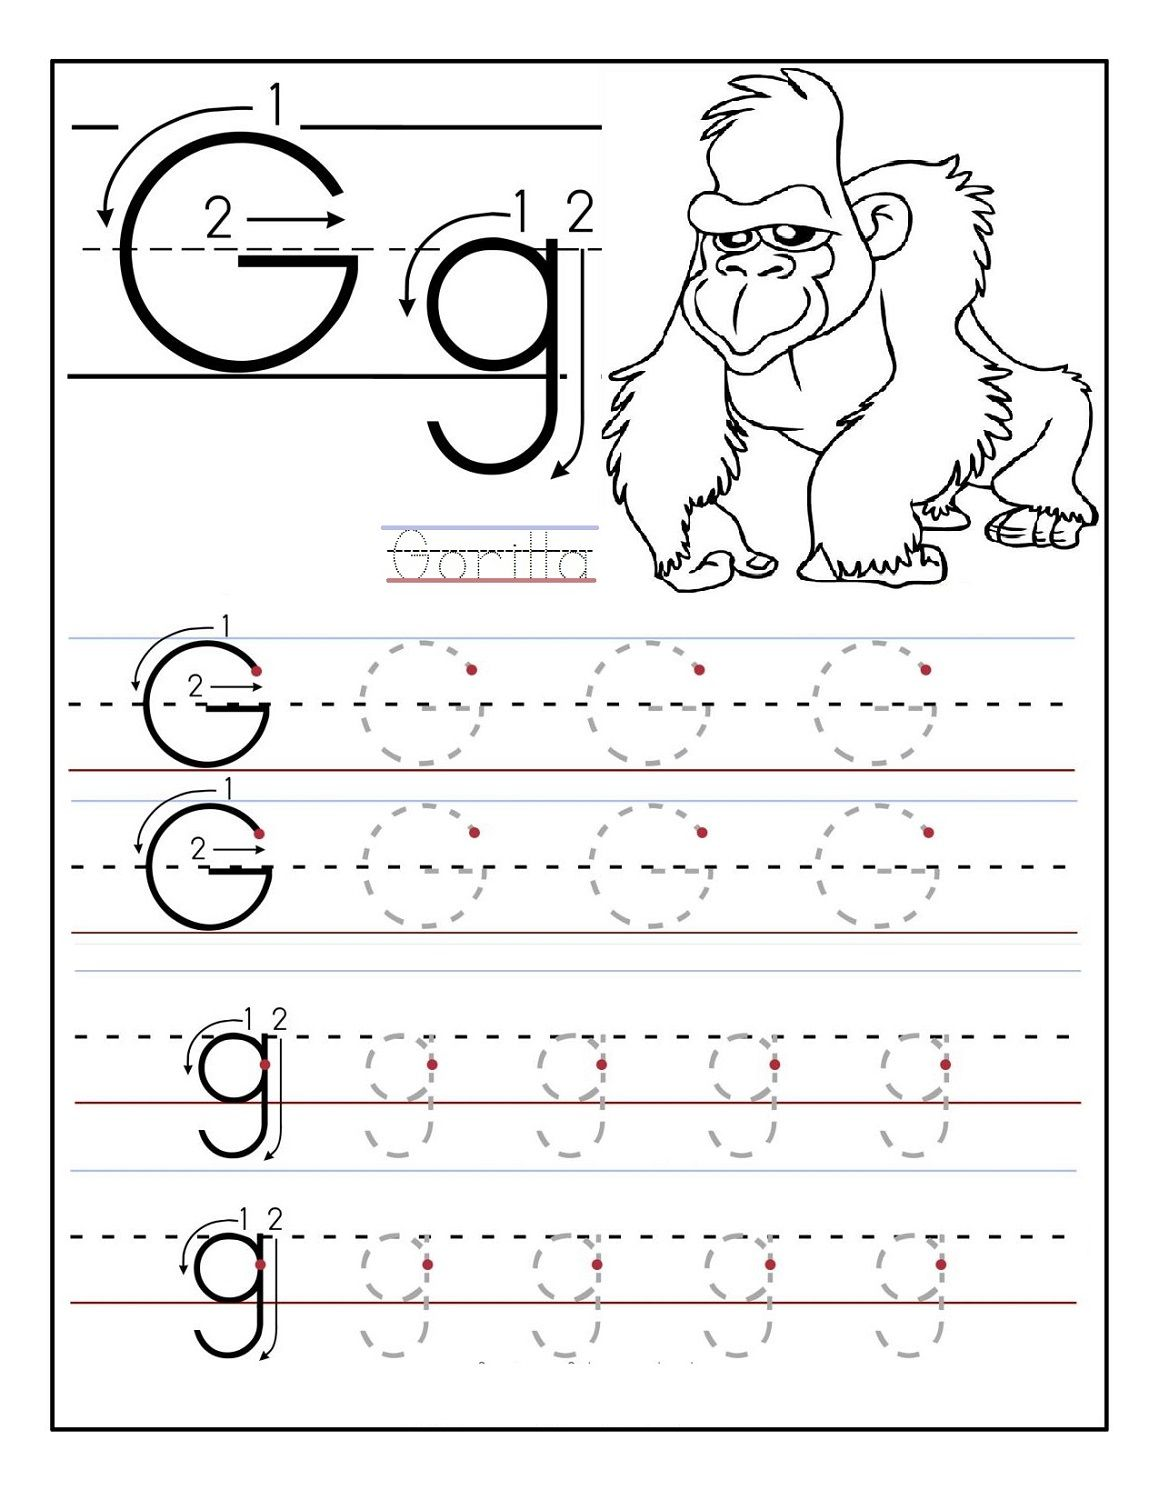 Workbooks traceable alphabet worksheets a-z : free traceable alphabet worksheets gorilla... | ABC's | Pinterest ...